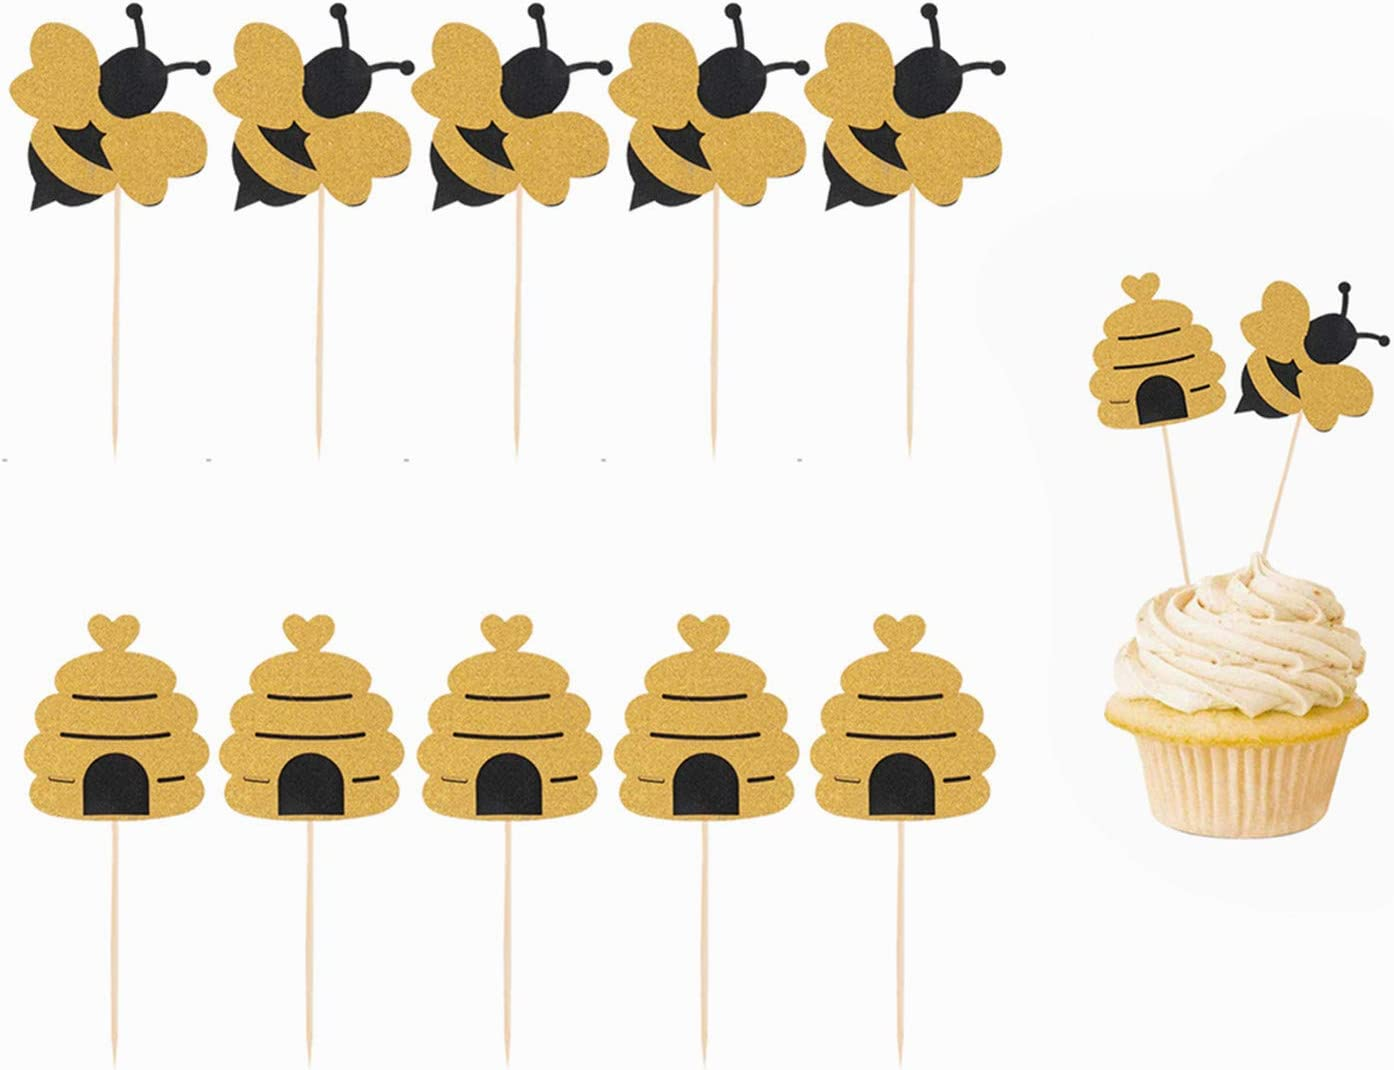 Amazon Com Hasken 50 Pack Bee Cupcake Toppers Glitter Bumble Bee Cupcake Toppers For Bumble Bee Gender Reveal Baby Shower Birthday Party Decor Grocery Gourmet Food